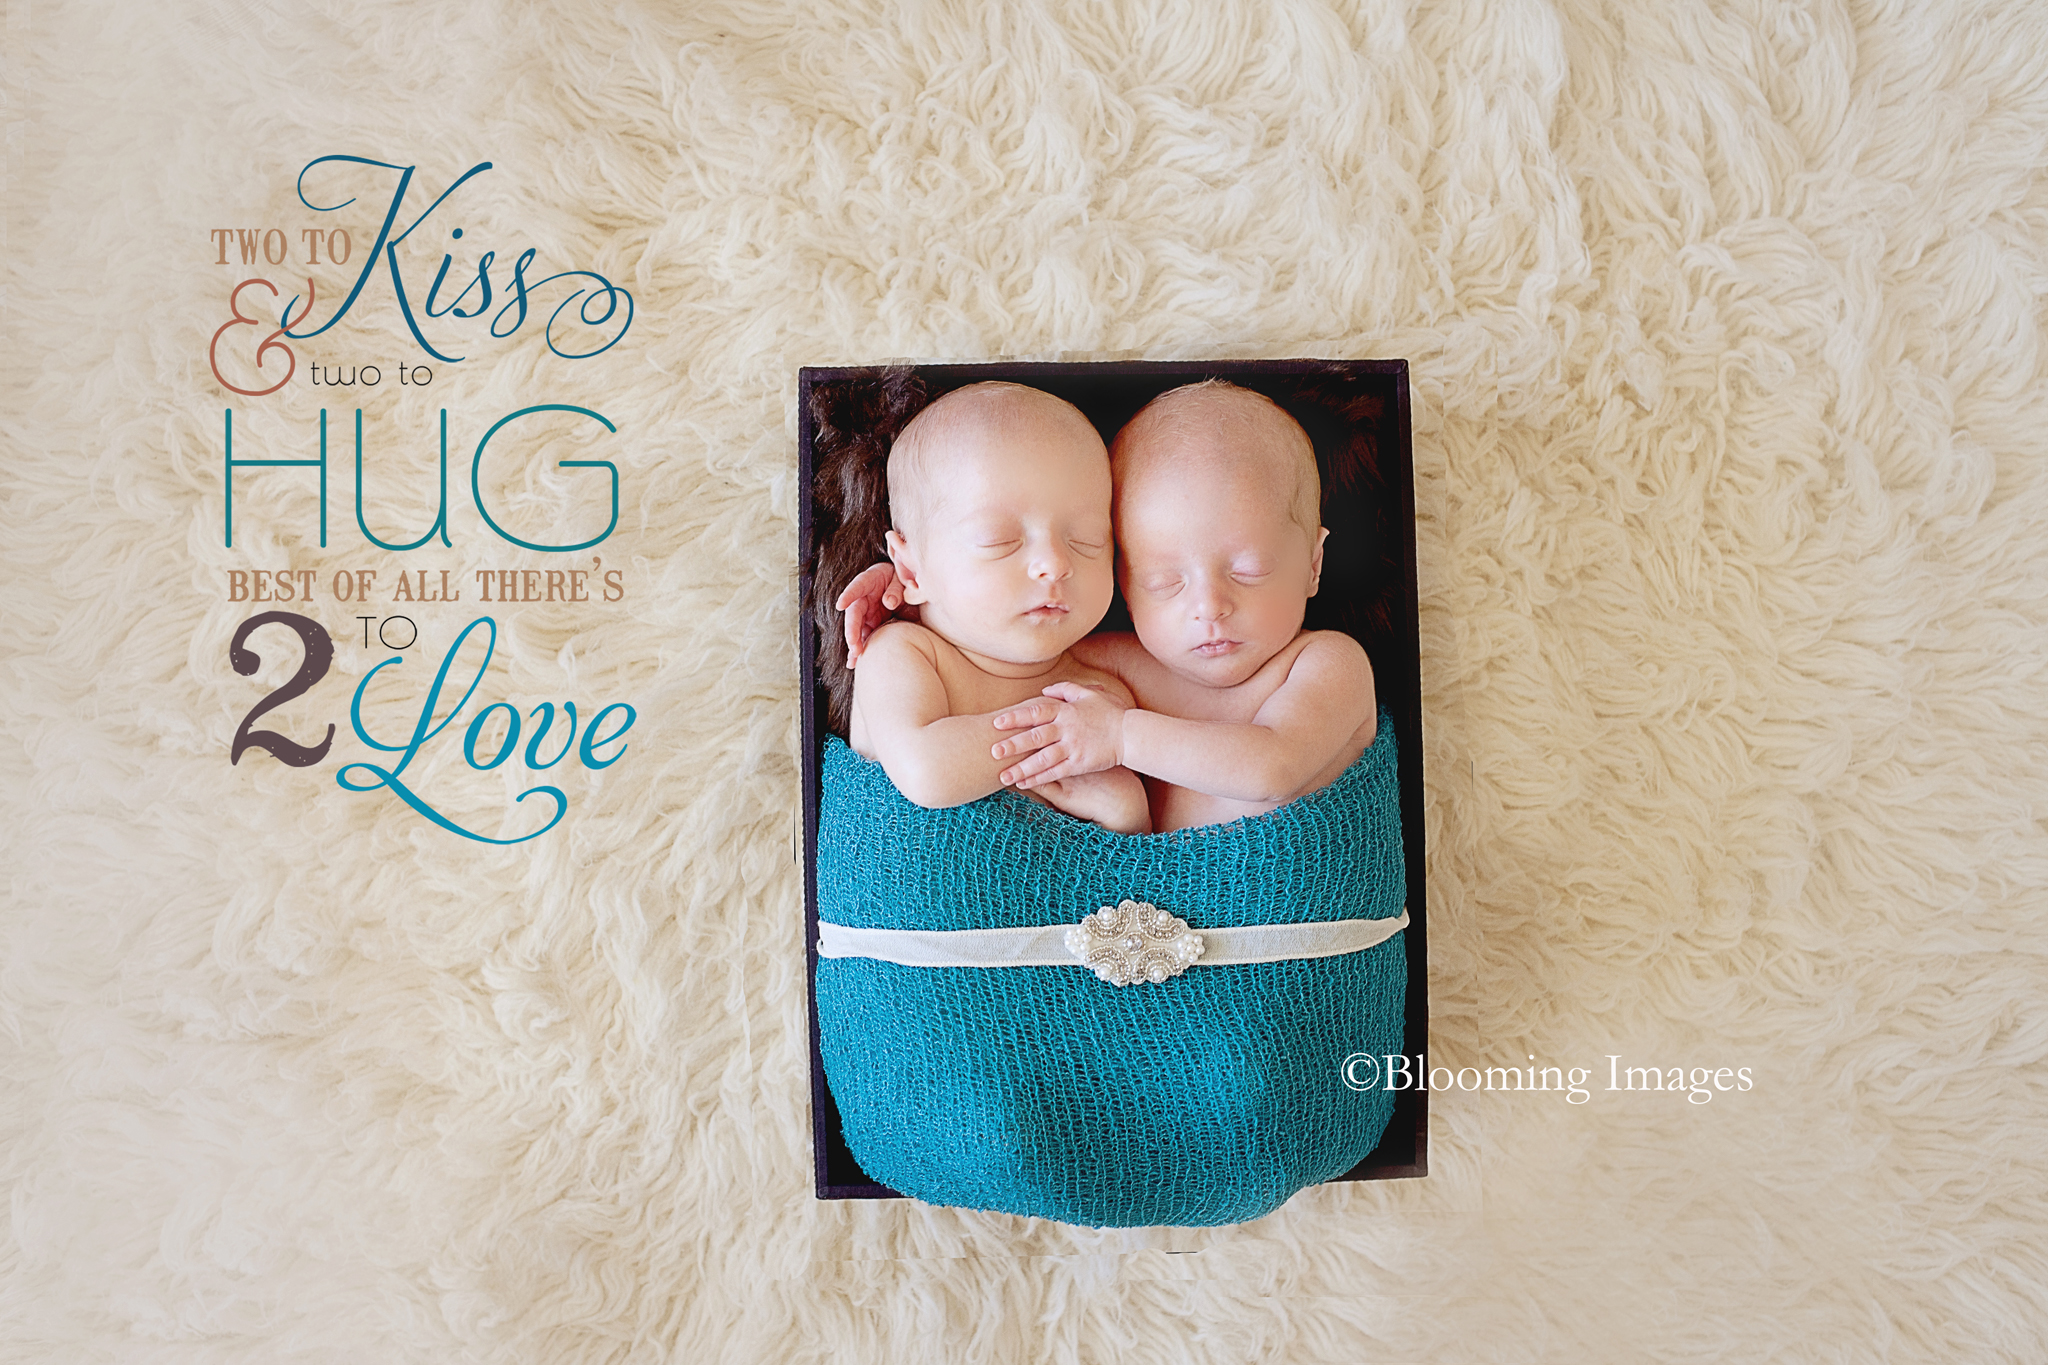 Newborn Photographer Albuquerque, baby photographer, baby photos albuquerque, newborn photos